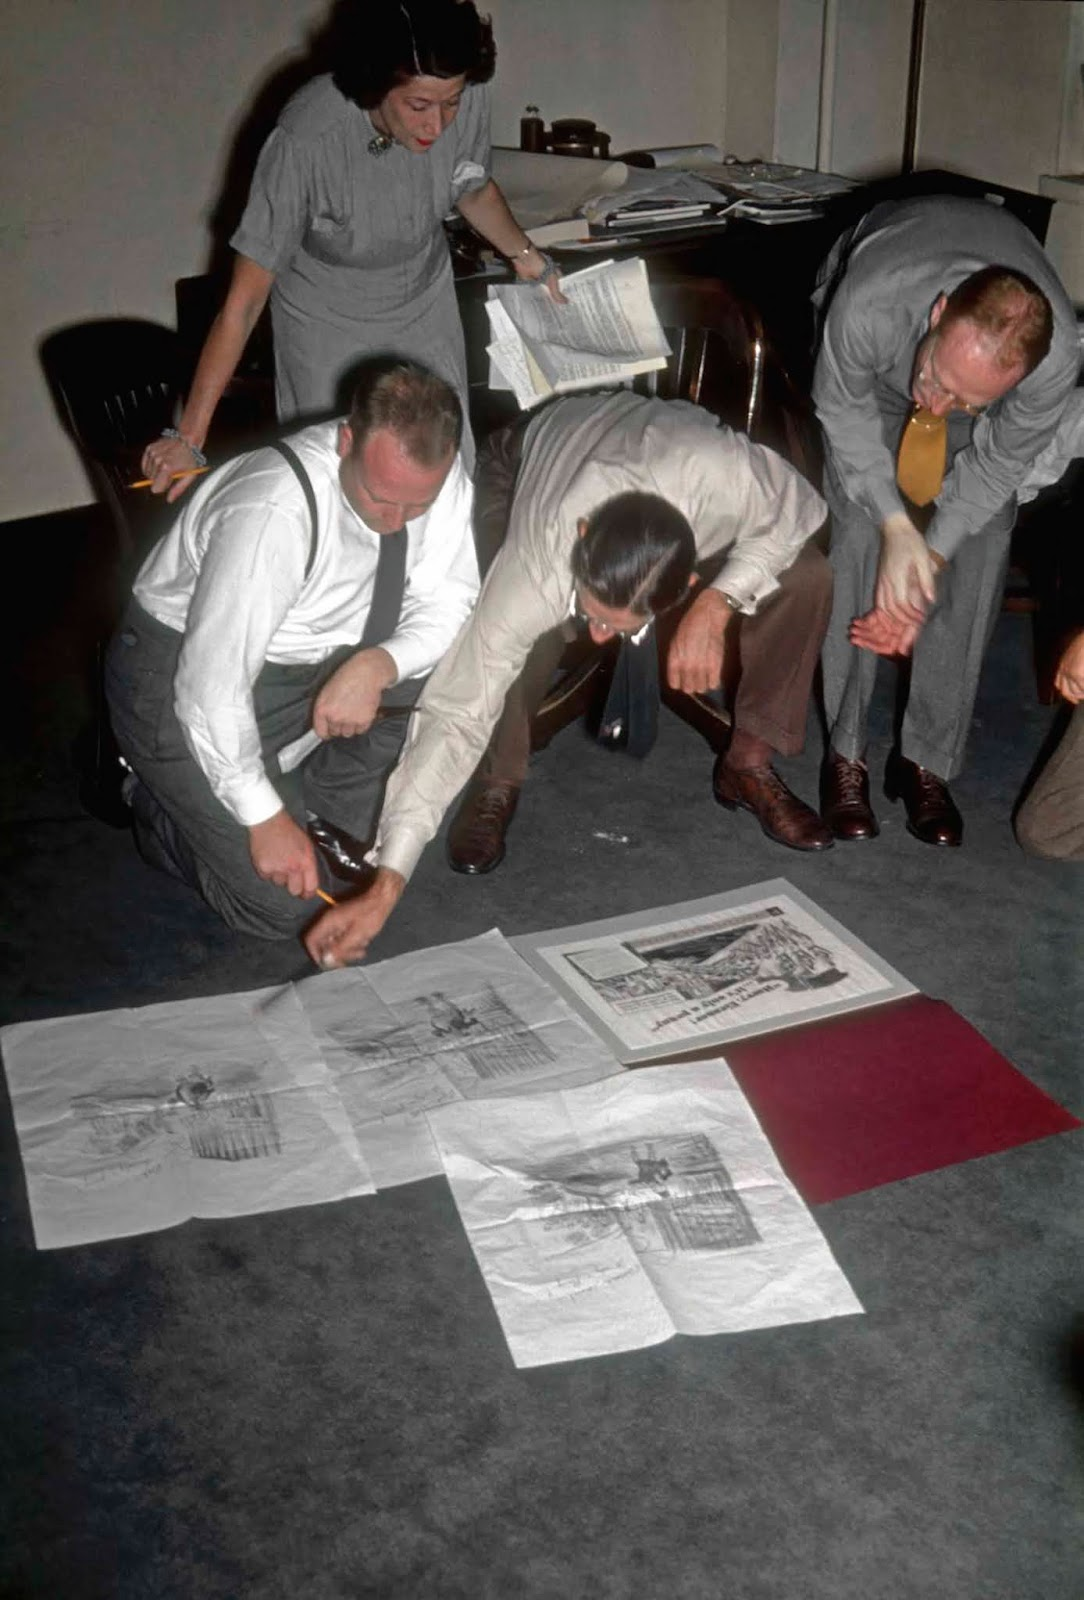 A female secretary clutches a multitude of notes, as three men examine a range of illustrations.